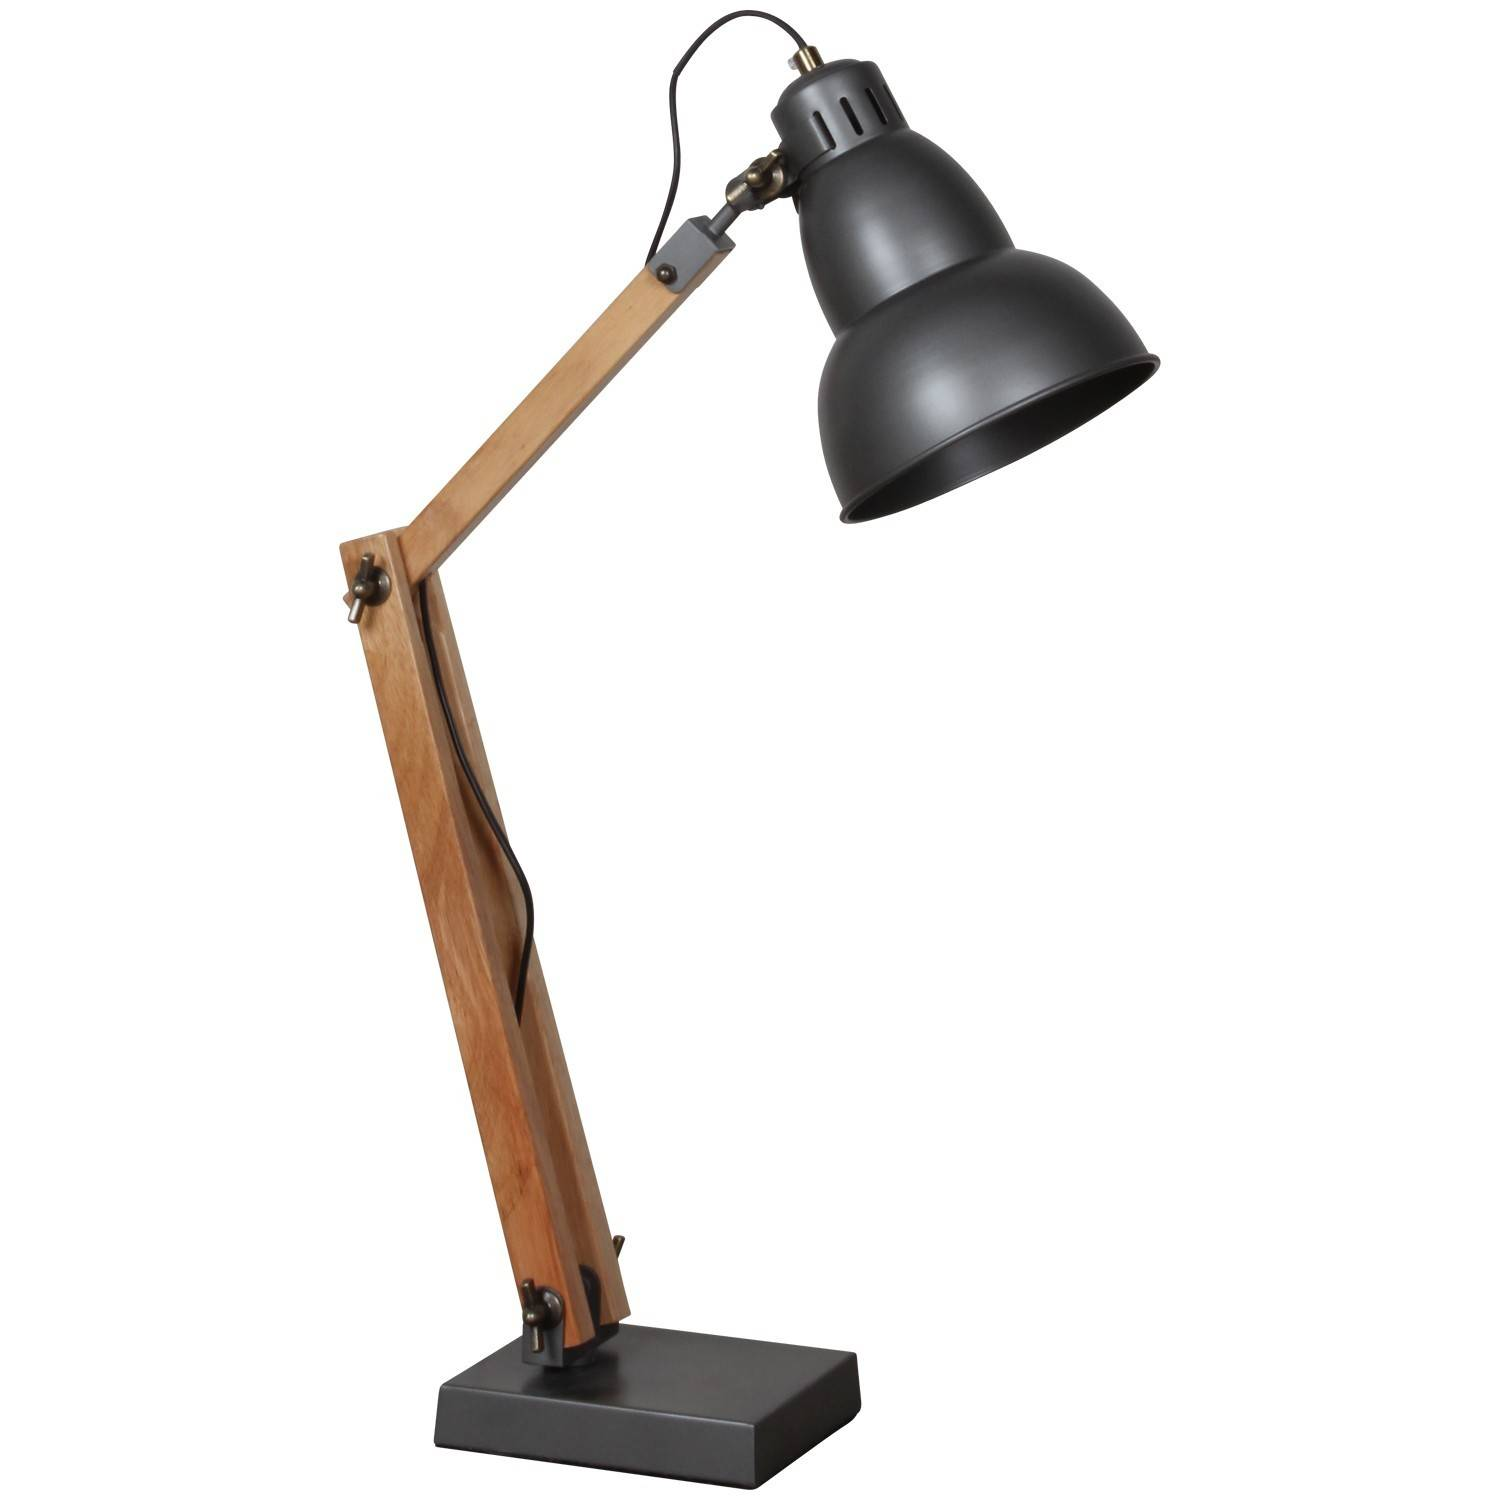 Store Banne D'occasion Lampe A Poser Industrielle Lampe Poser Industrielle Verre